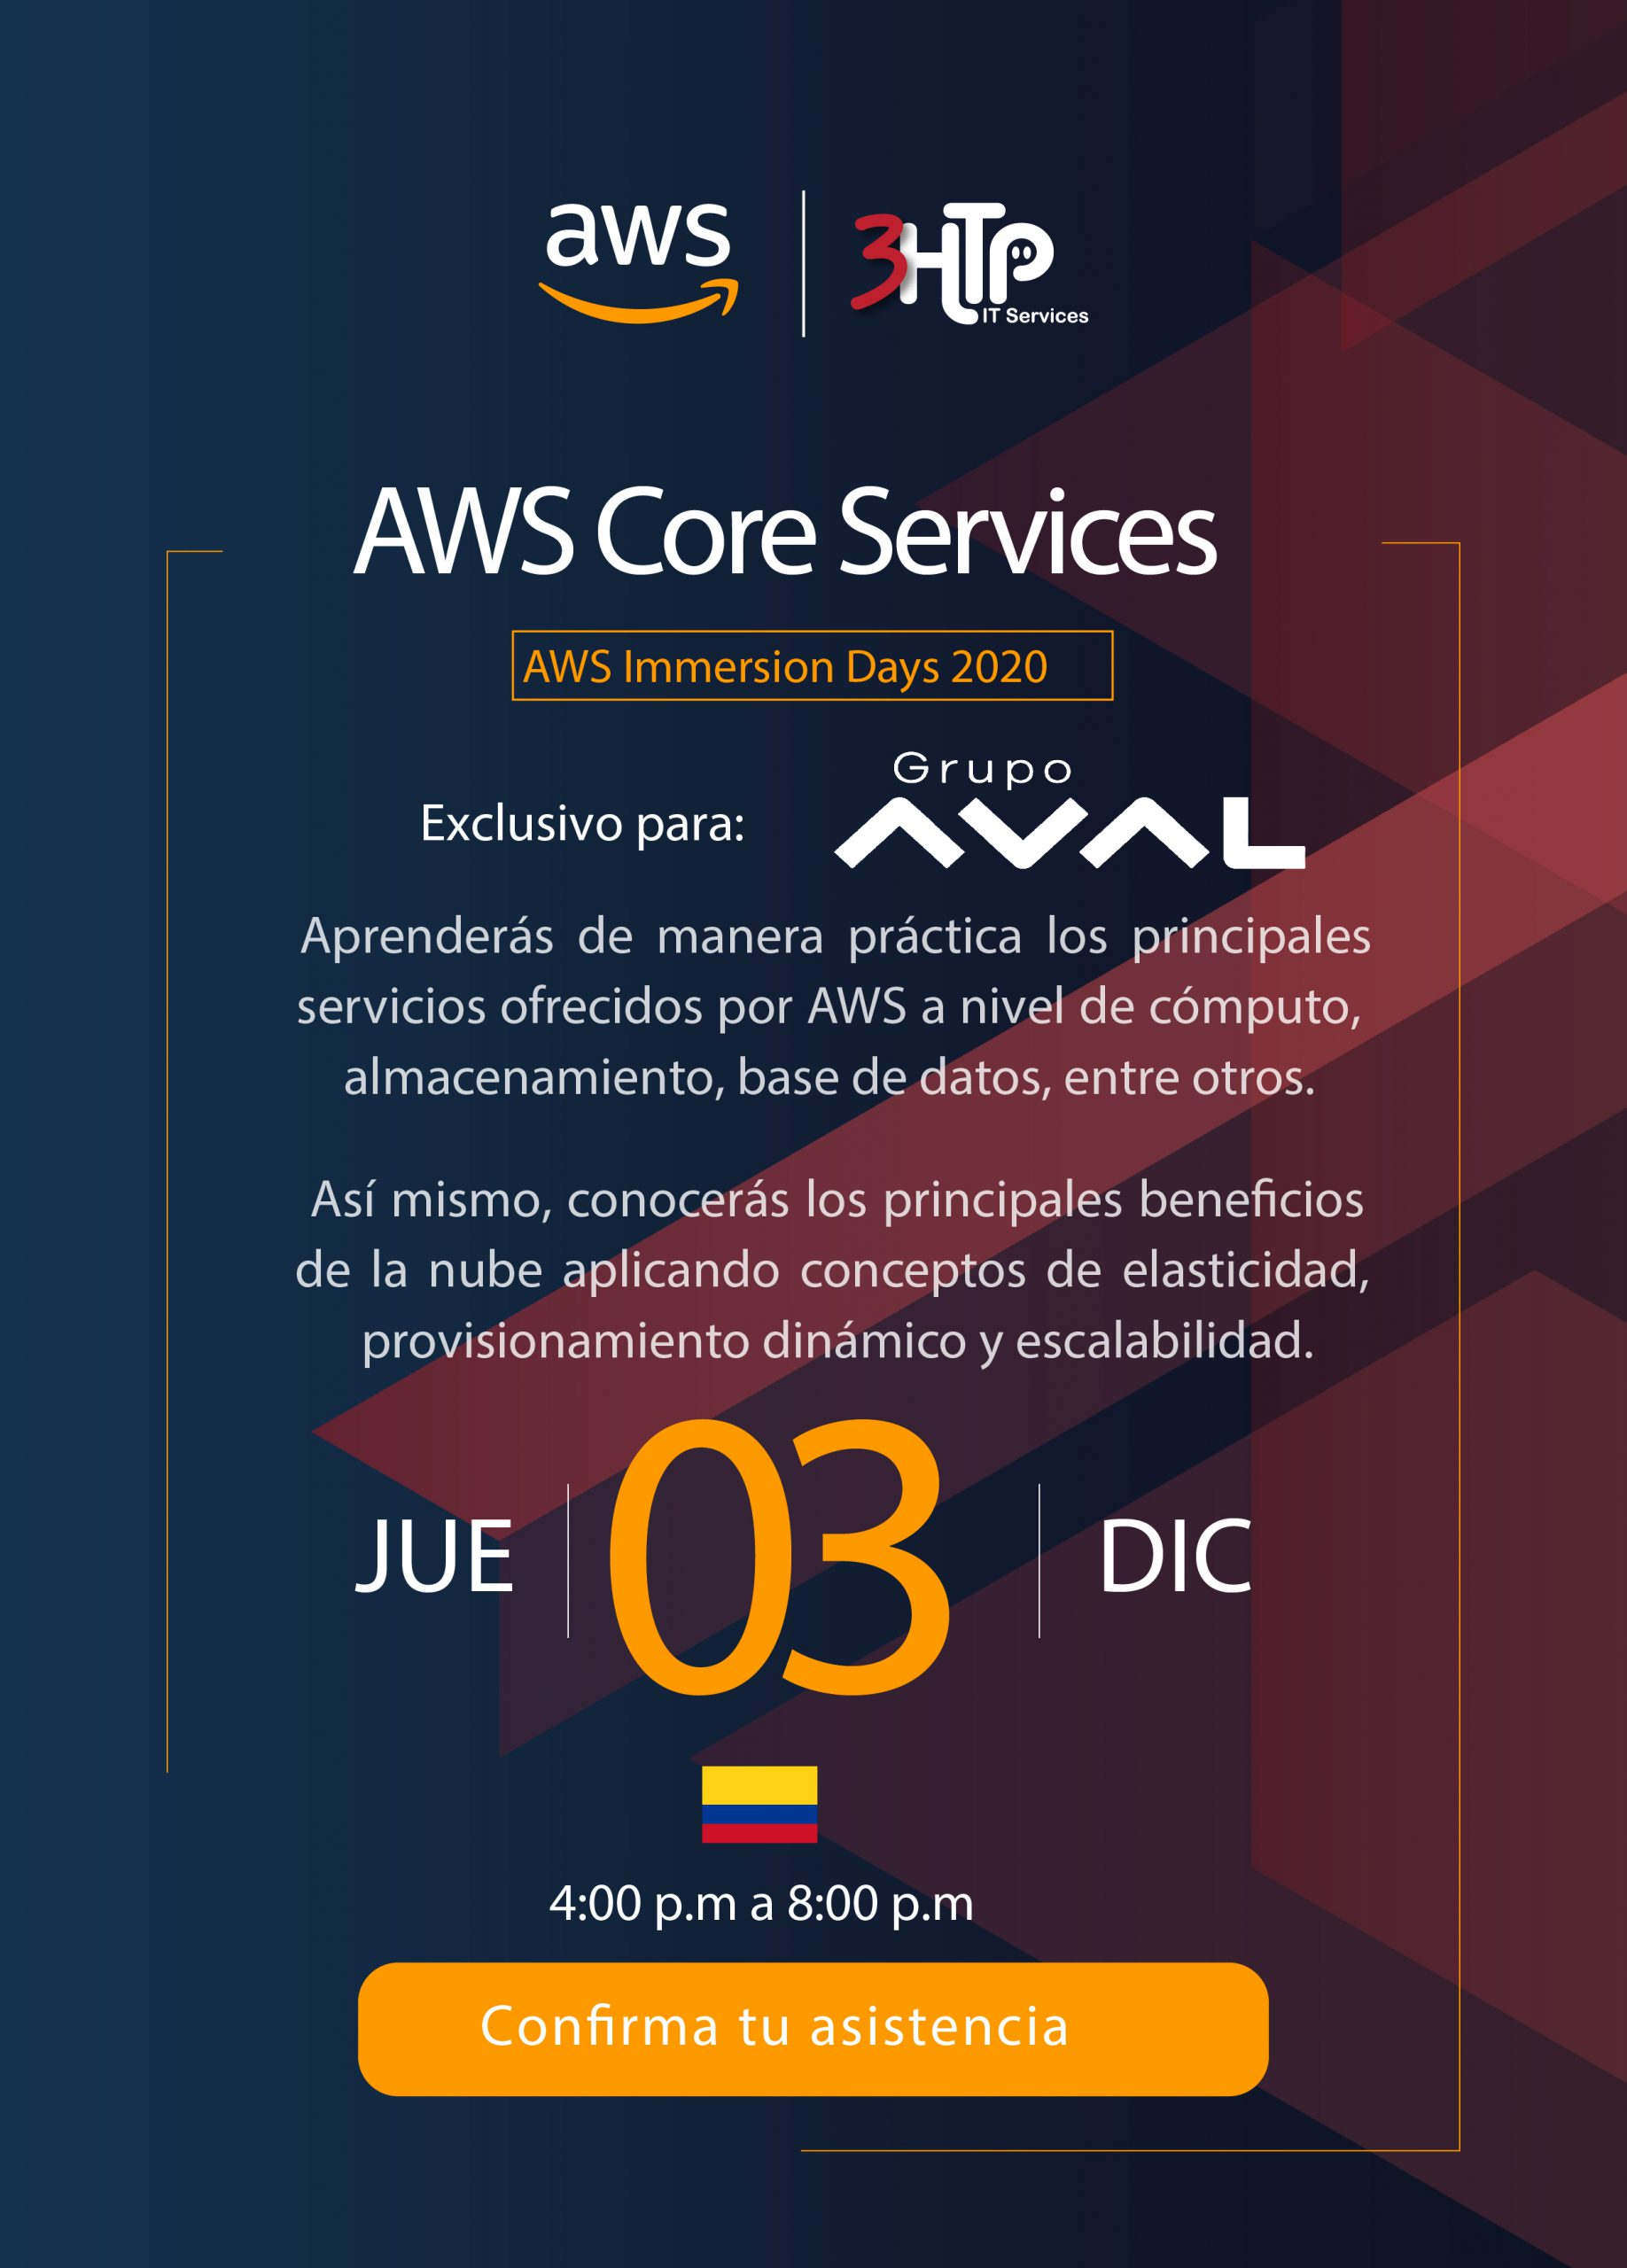 AWS Immersion Day Core Services